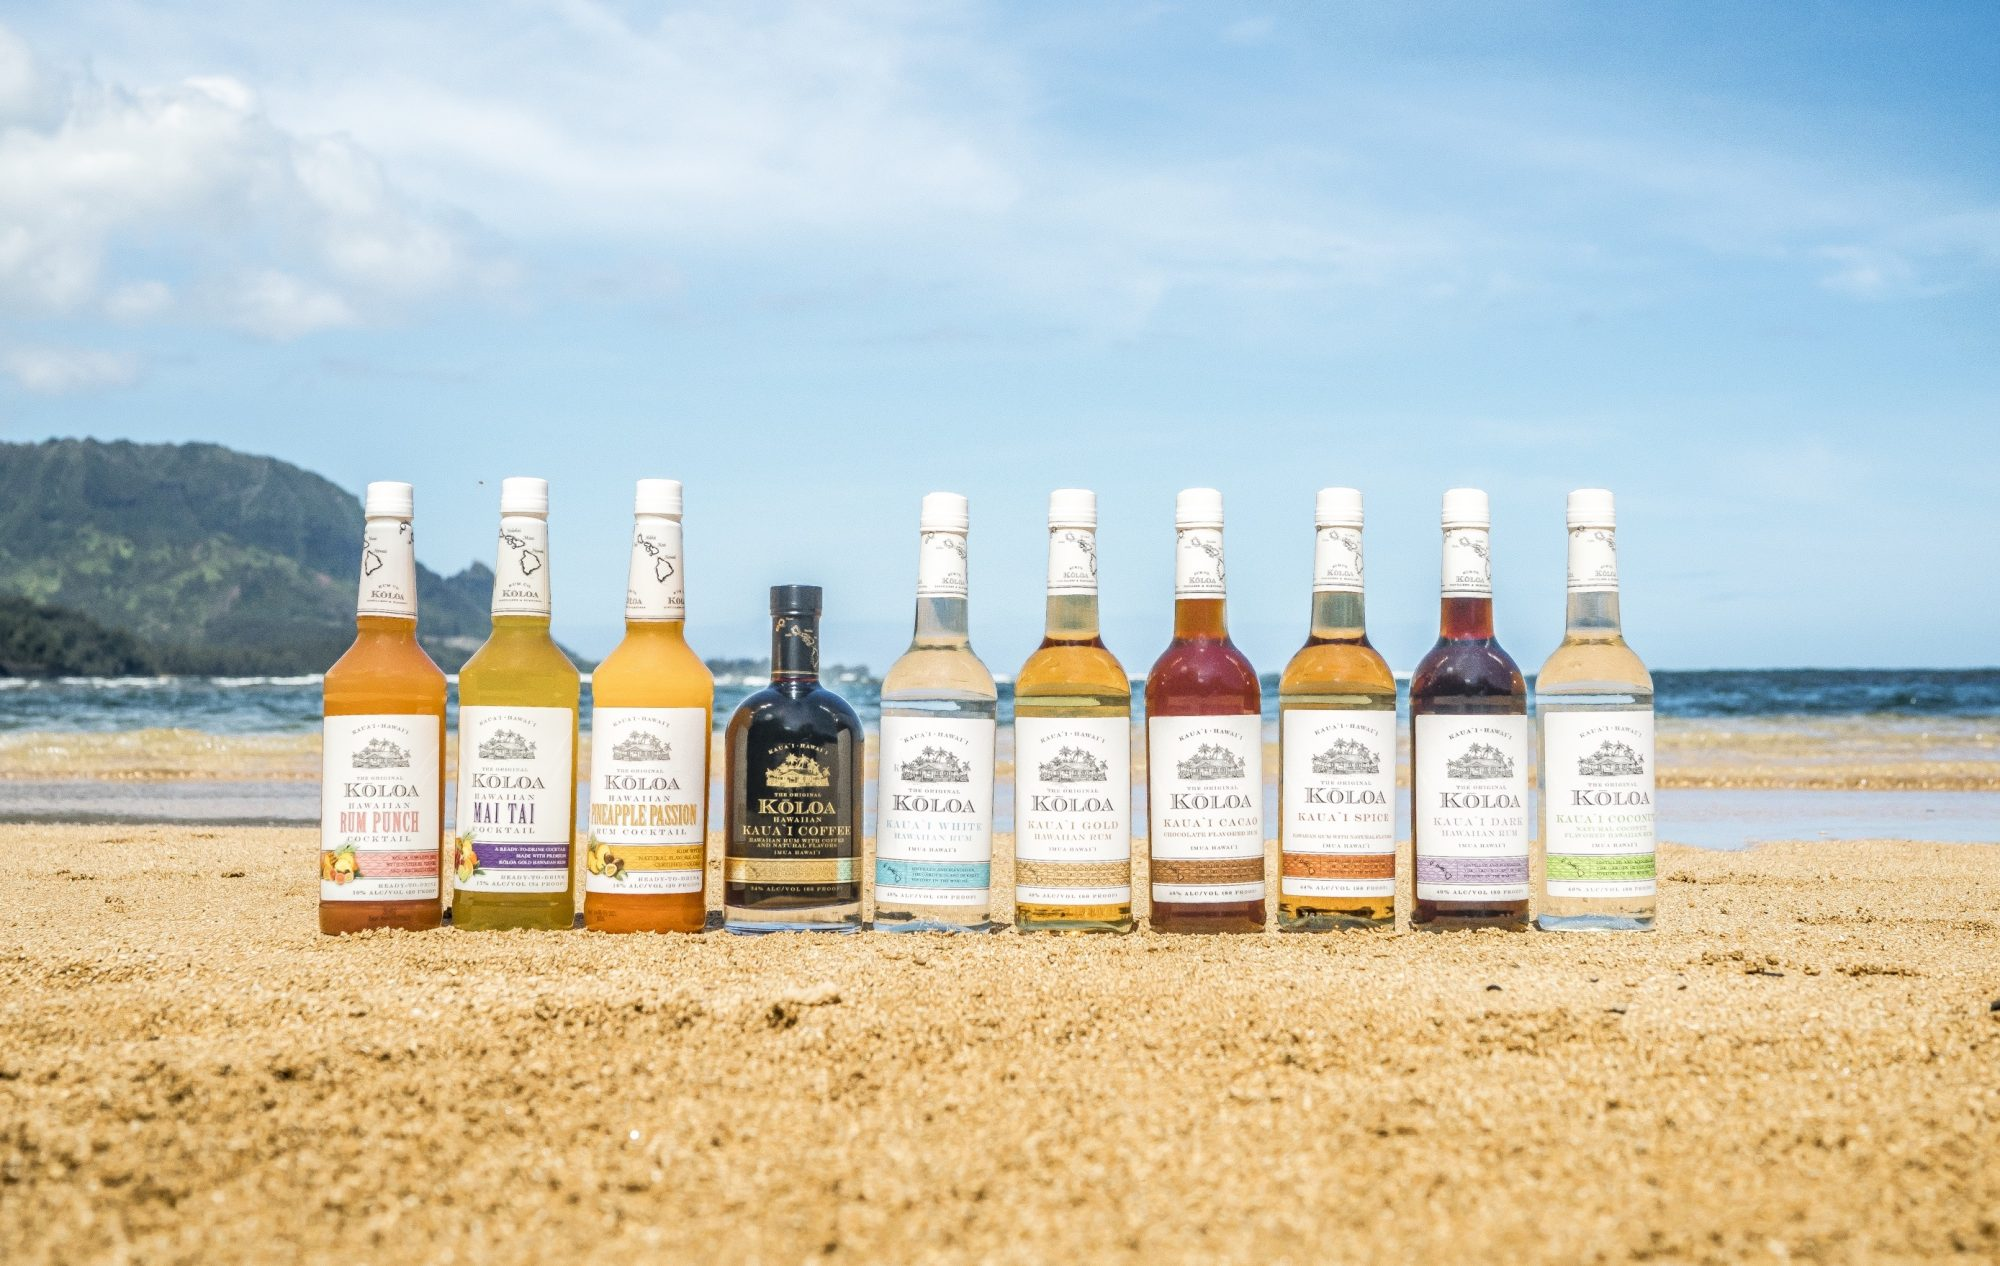 Koloa's rums and bottled cocktails lined up on the beach